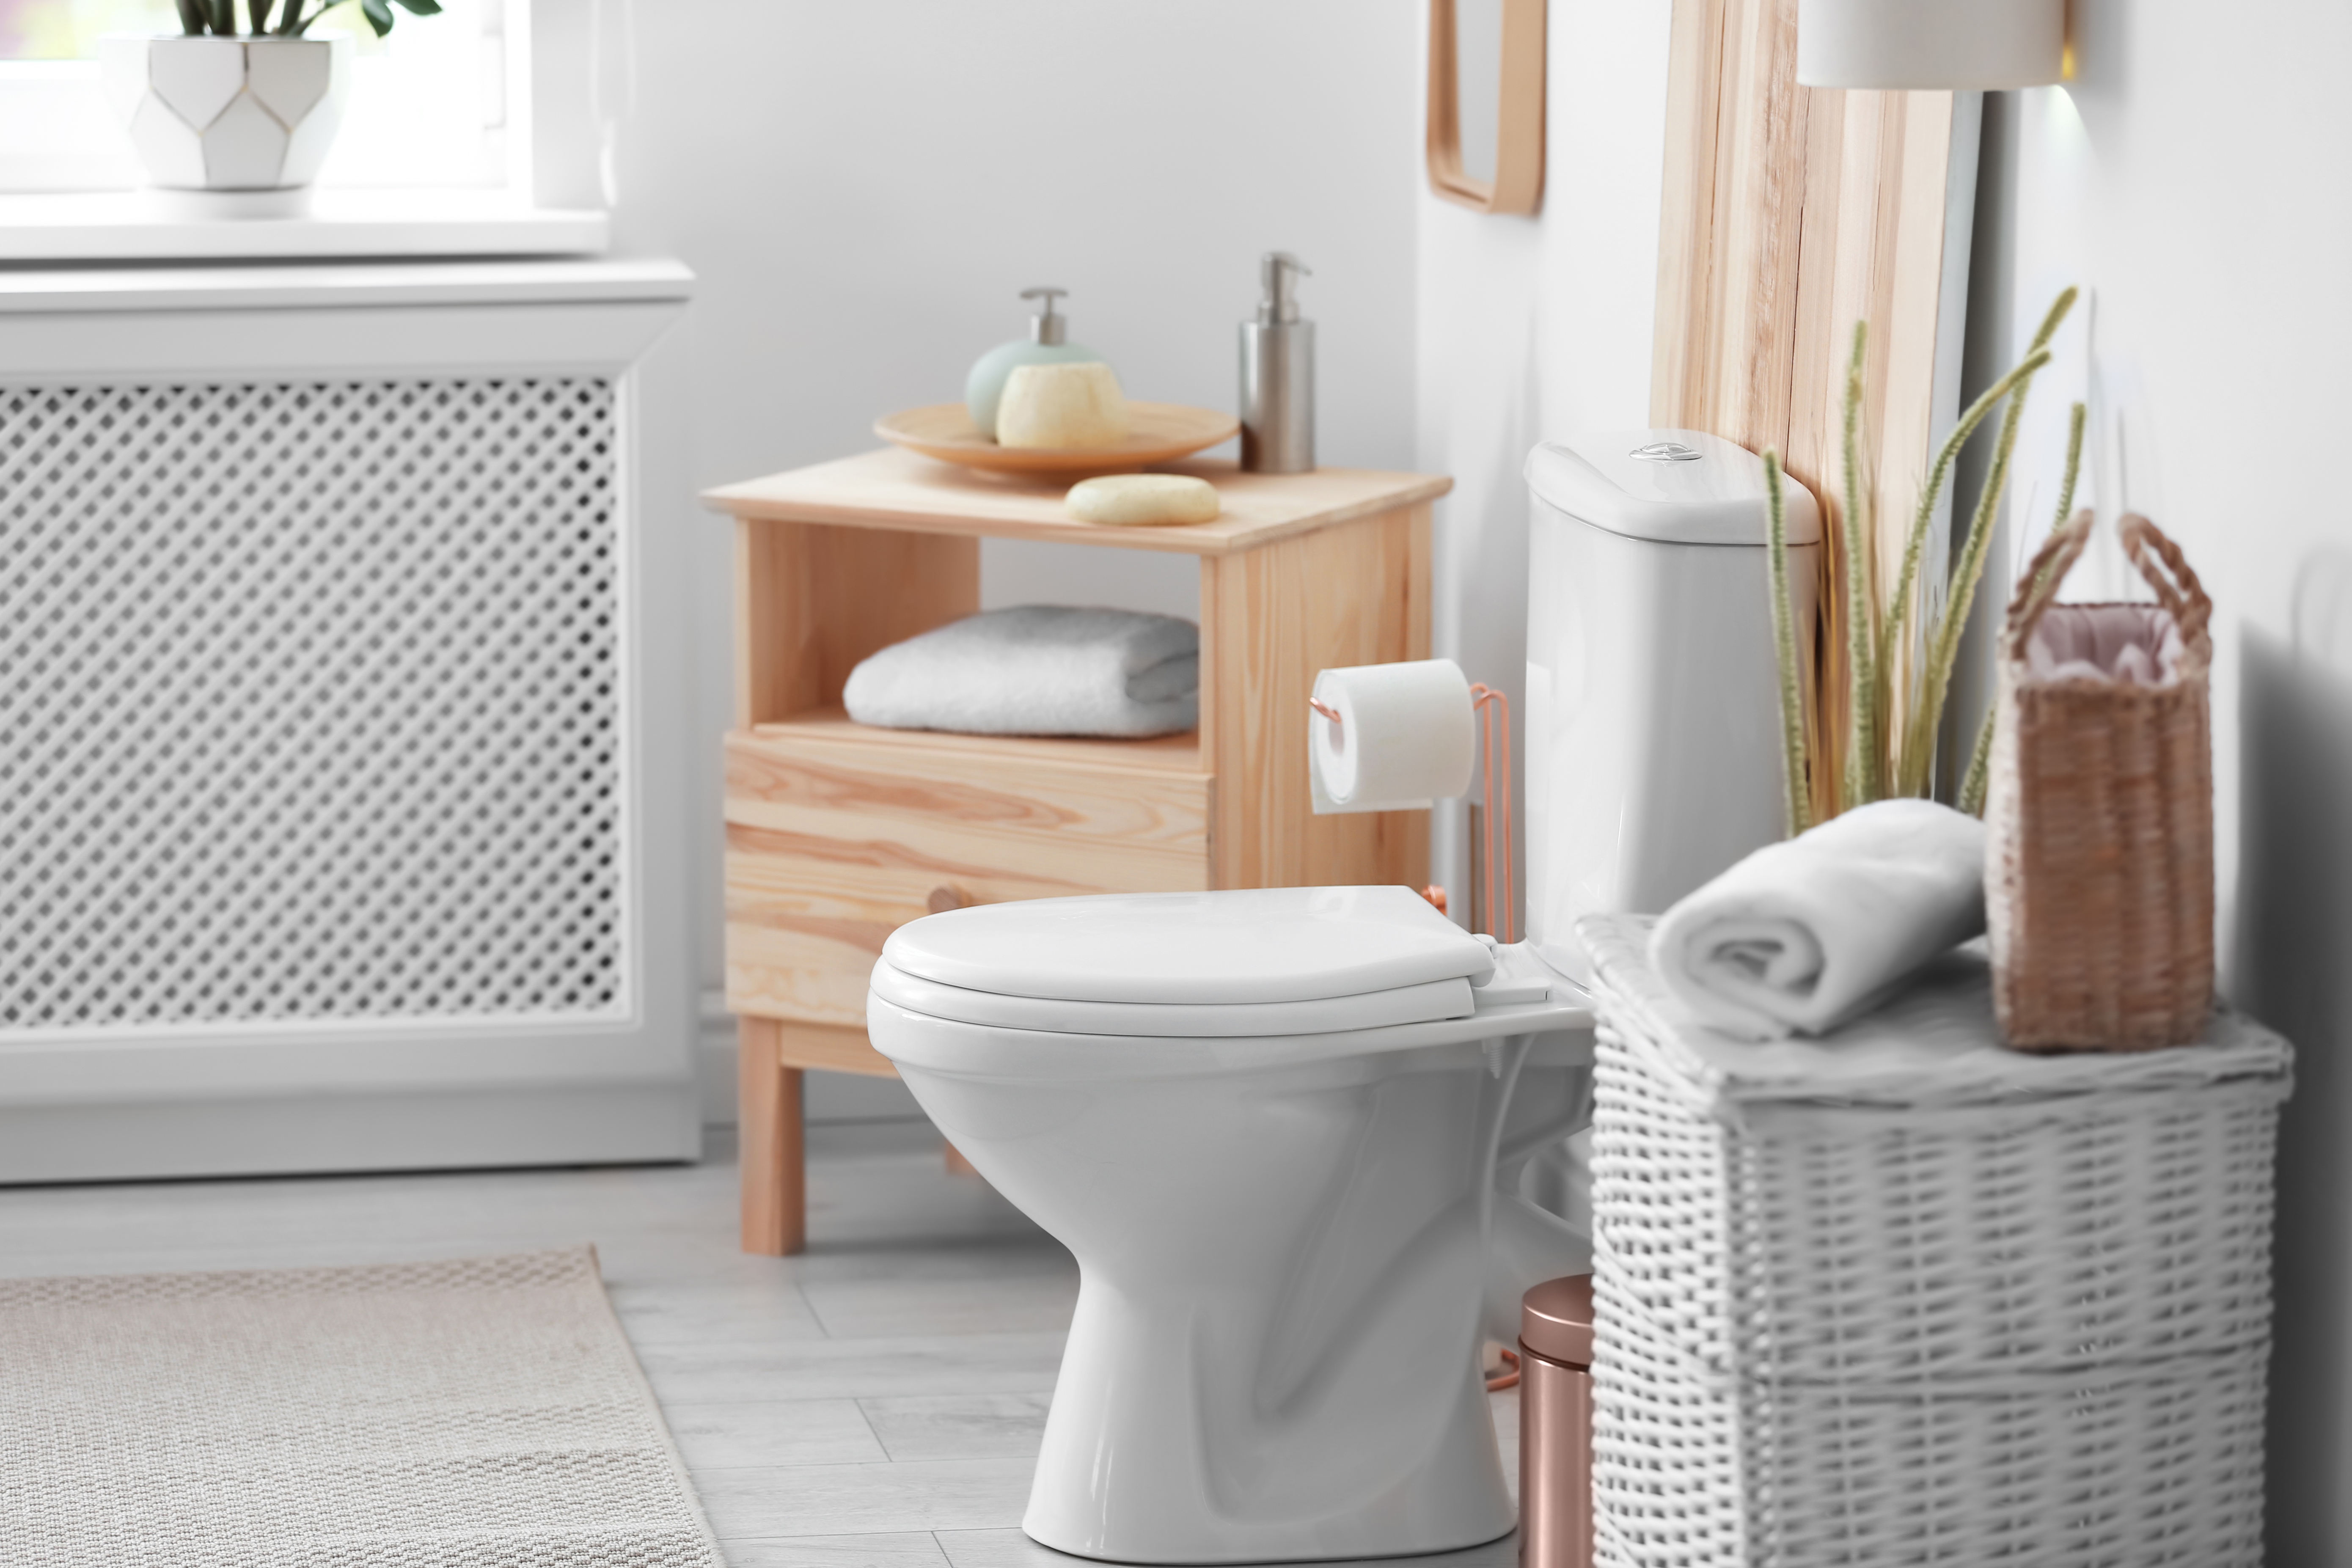 These Toilet Paper Holders Keep Bathroom Necessities Within Arm's Reach